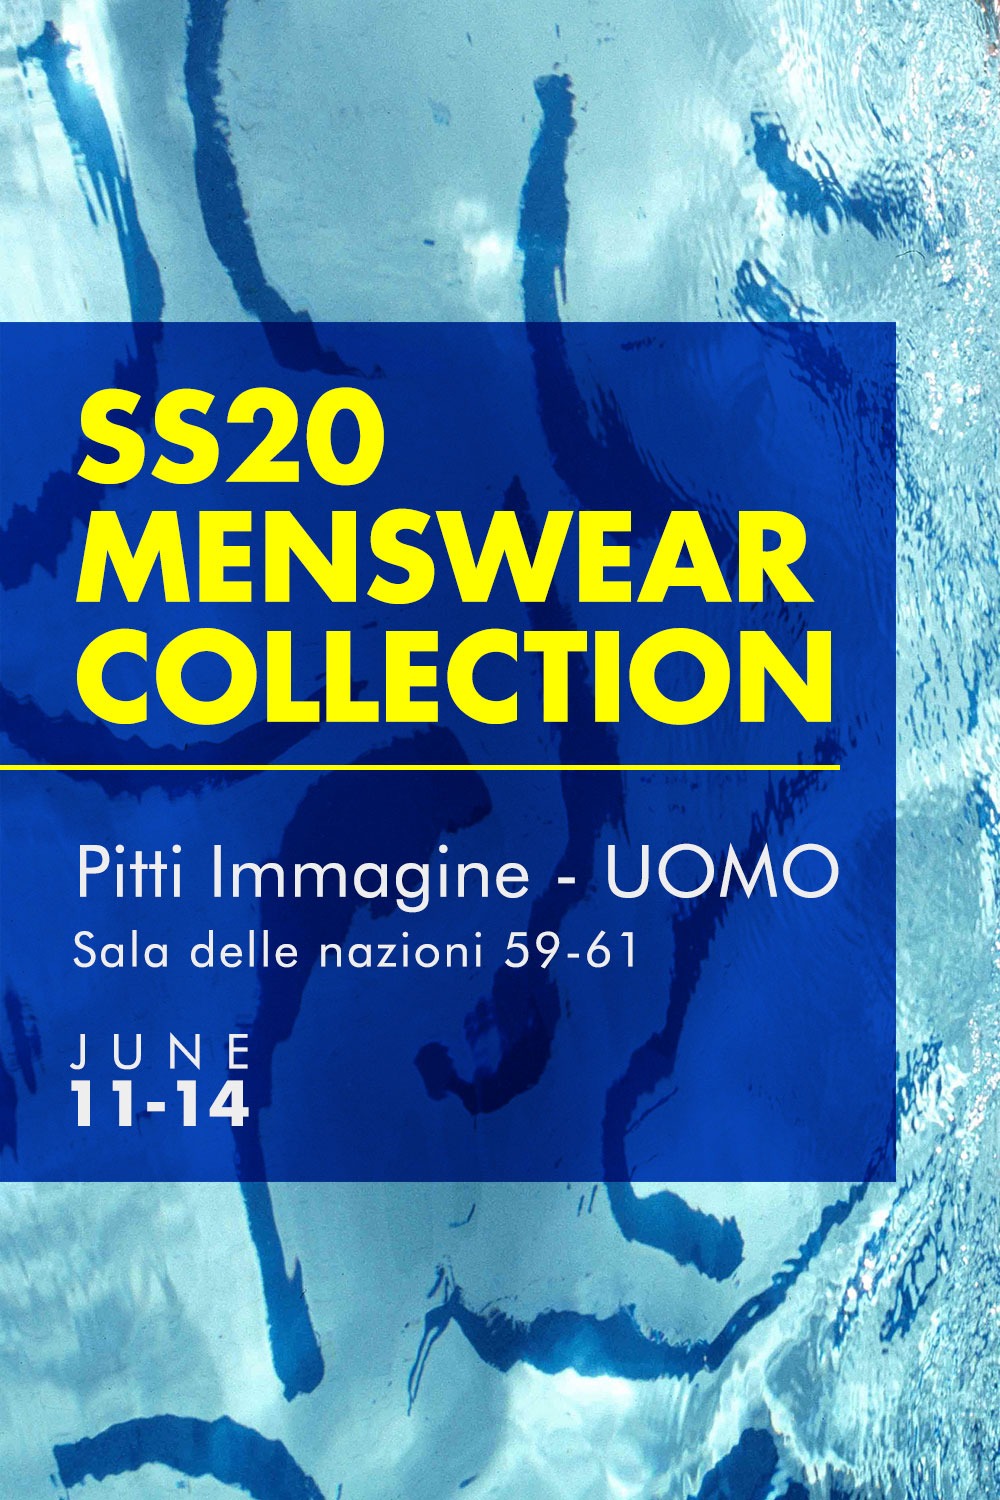 THE MENSWEAR COLLECTION IS READY TO HIT THE PITTI!